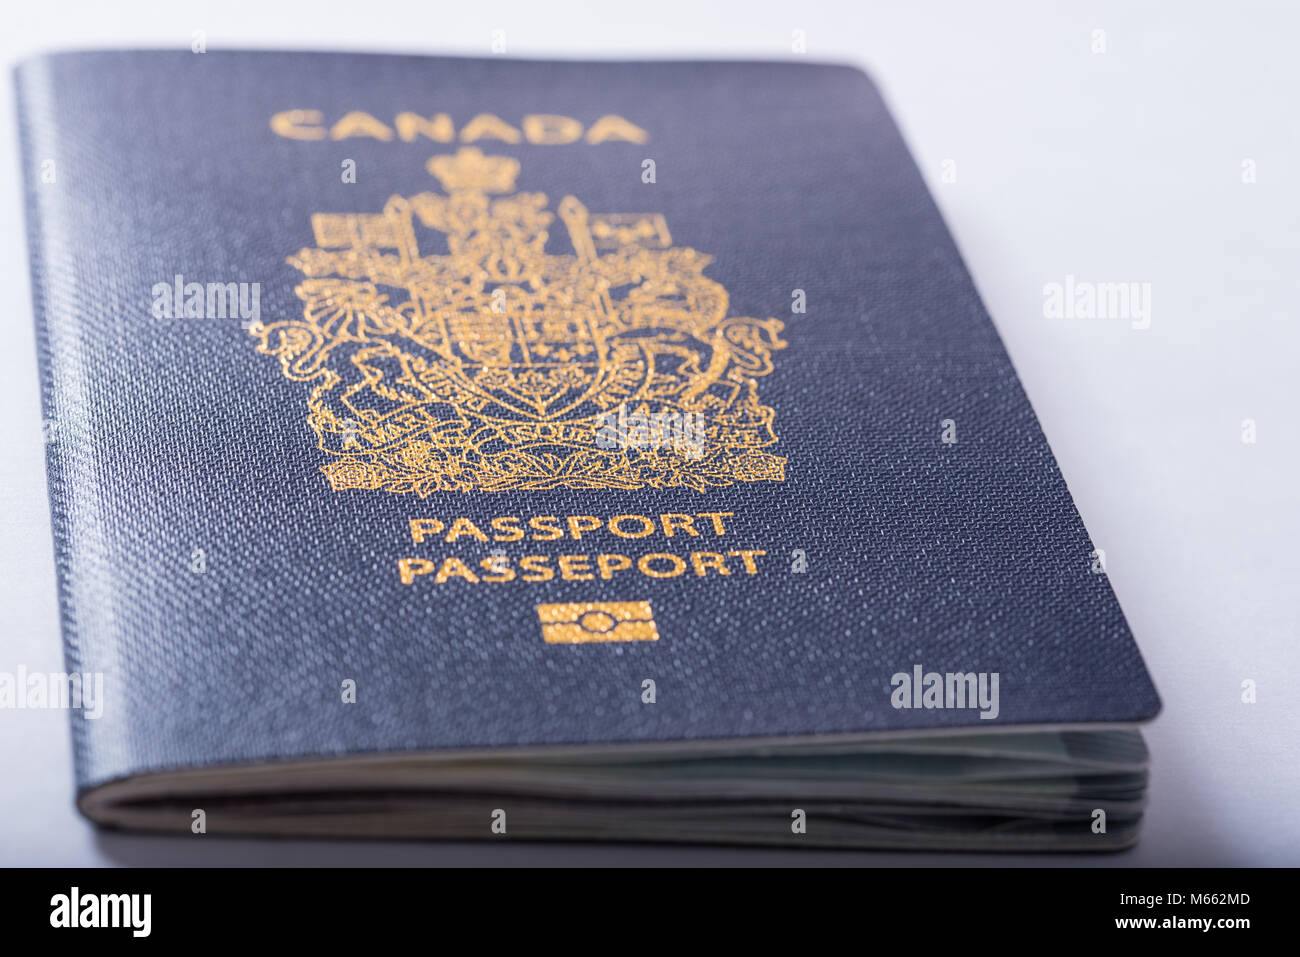 Close up view of a Canadian Passport on white background - Stock Image